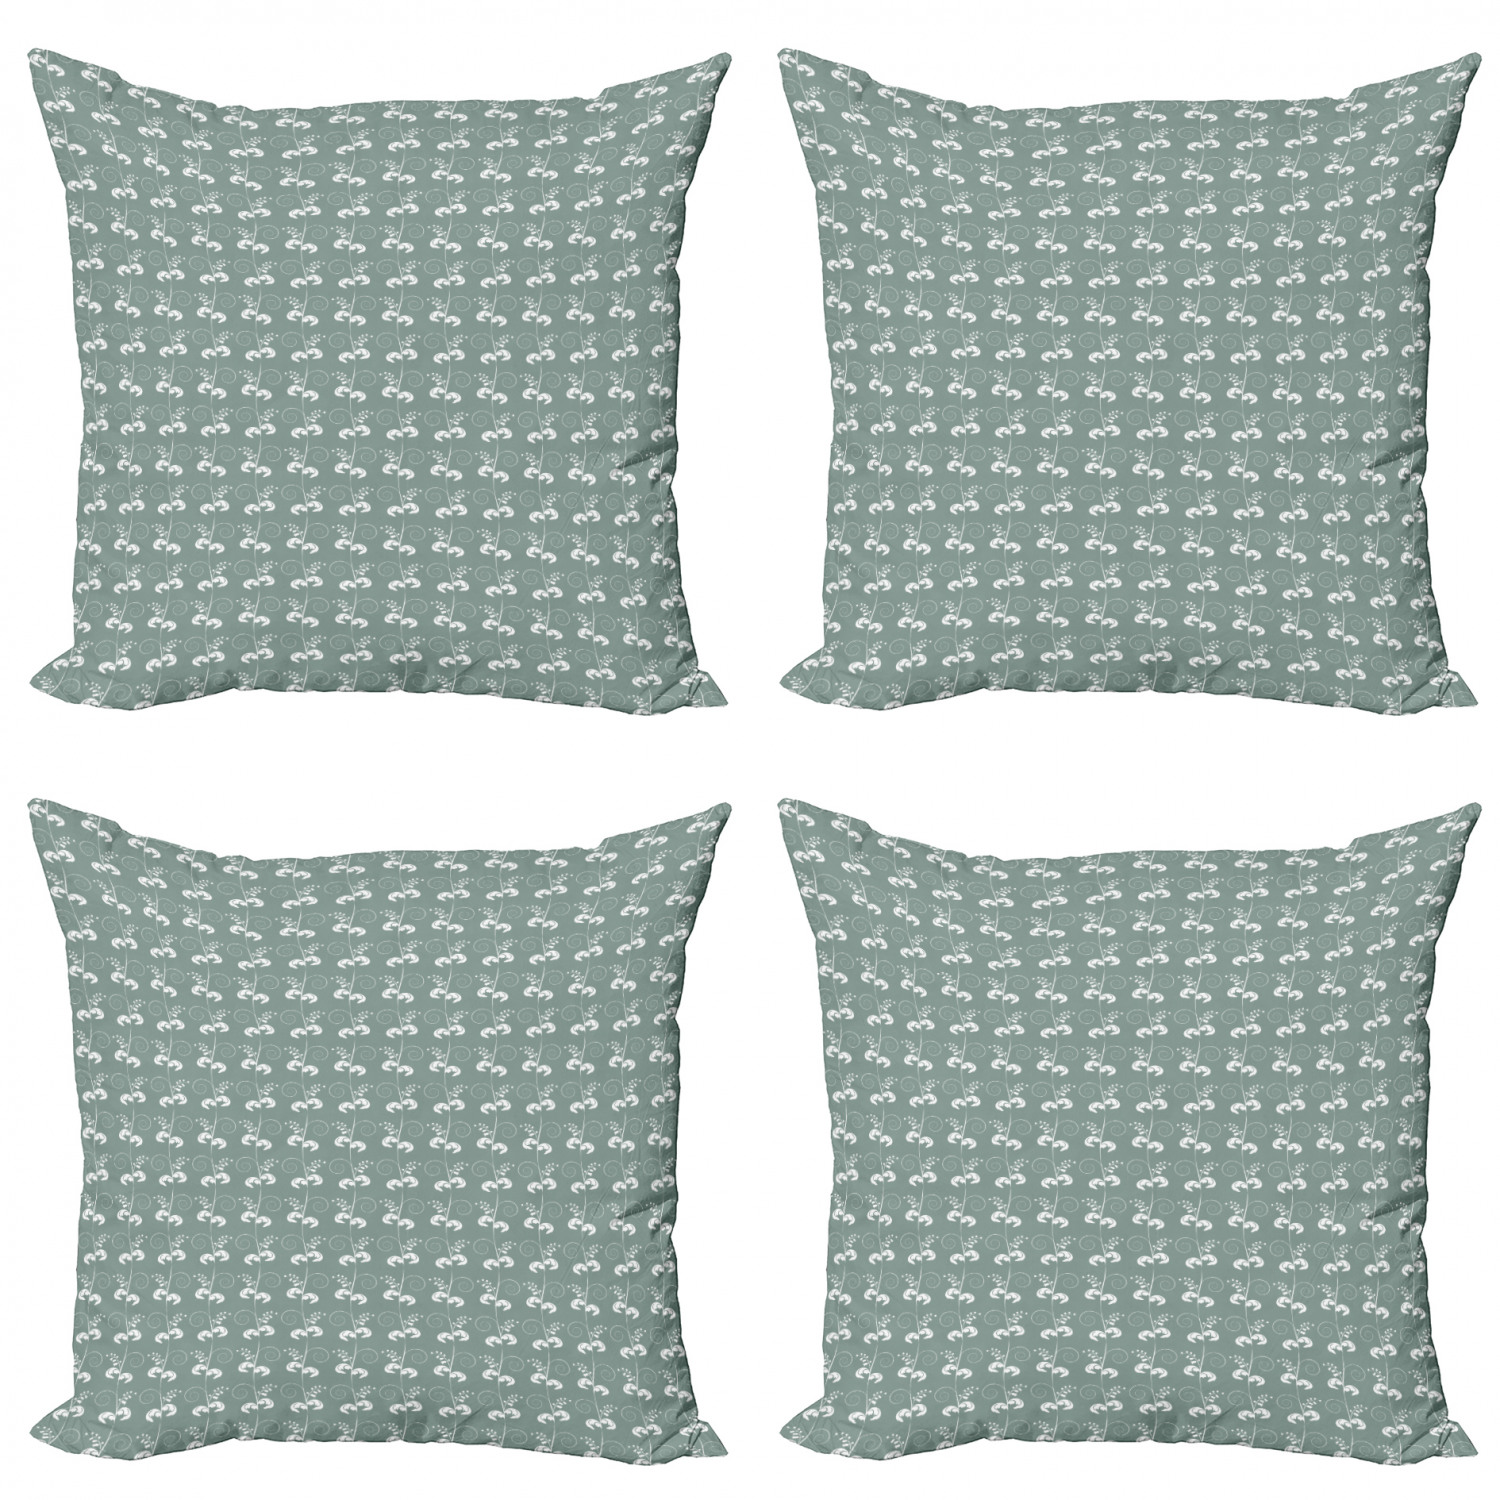 Green Throw Pillow Cushion Case Pack Of 4 Victorian Style Swirled Branches Twings Blooms Artwork Print Modern Accent Double Sided Print 4 Sizes Pale Sage Green White By Ambesonne Walmart Com Walmart Com